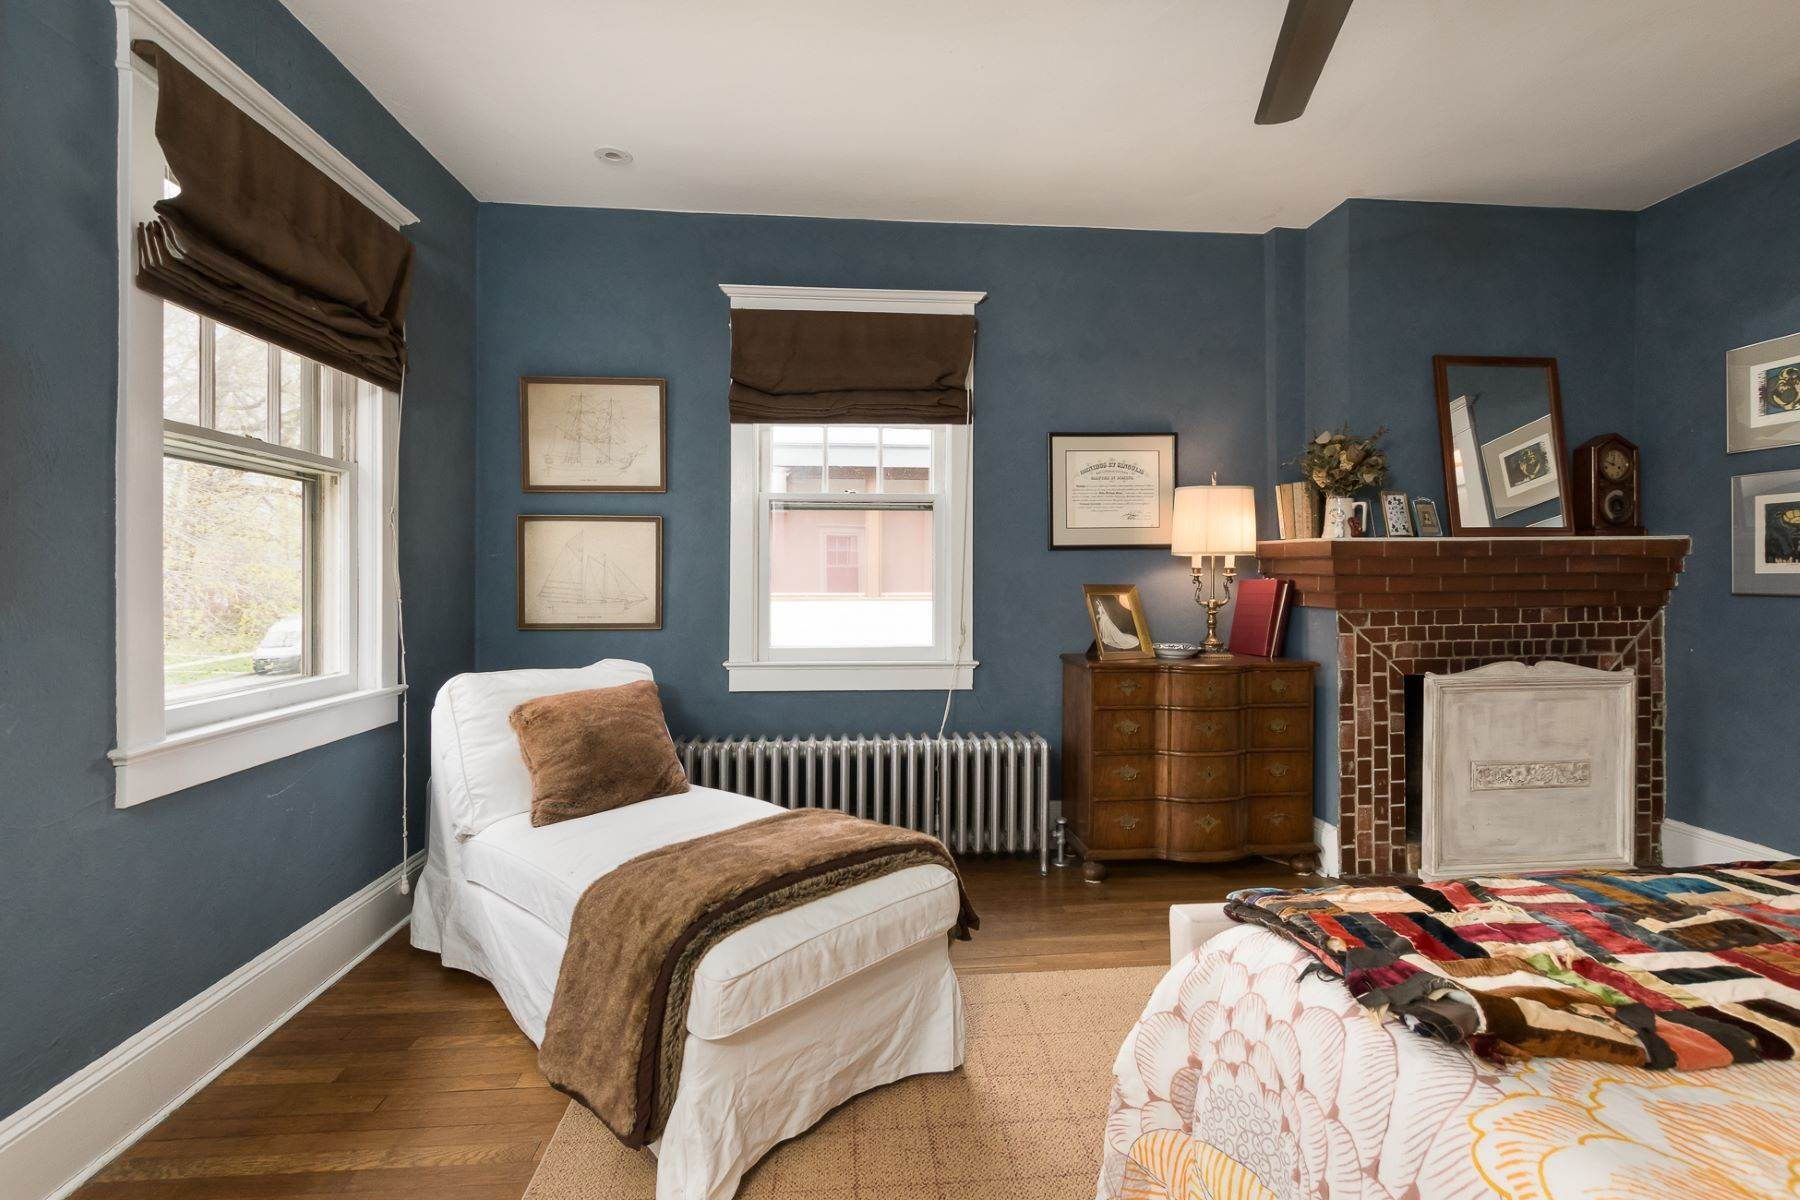 21. Single Family Homes für Verkauf beim In-Town Beauty Brimming With Delightful Character 91 Moore Street, Princeton, New Jersey 08540 Vereinigte Staaten